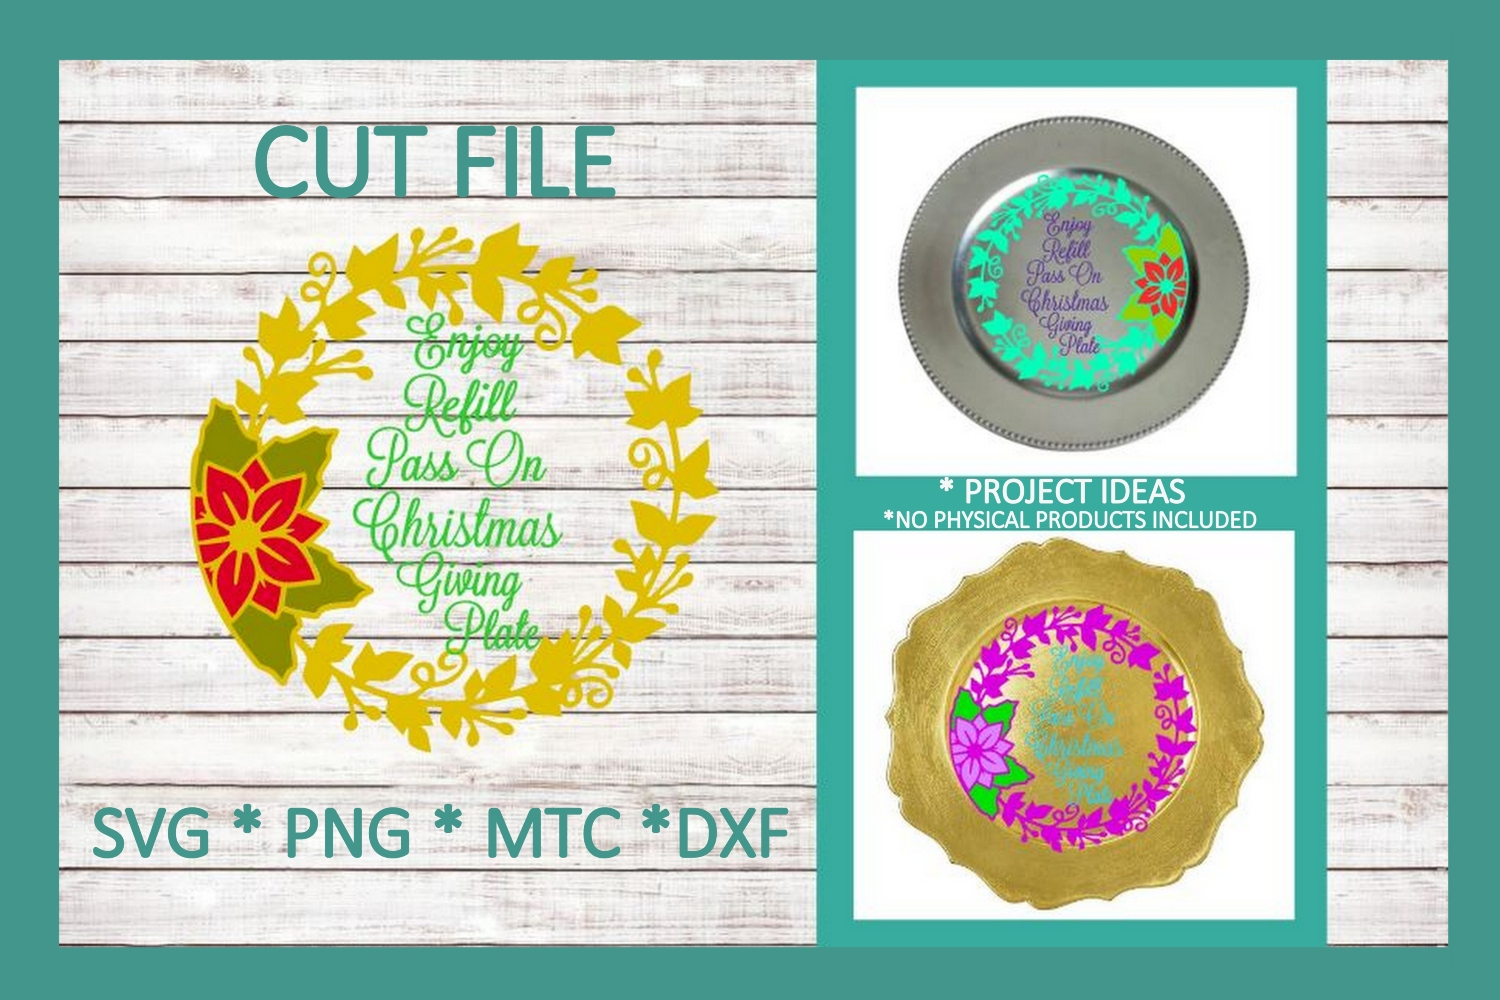 SVG Cut File Christmas Giving Plate Design #05 example image 1